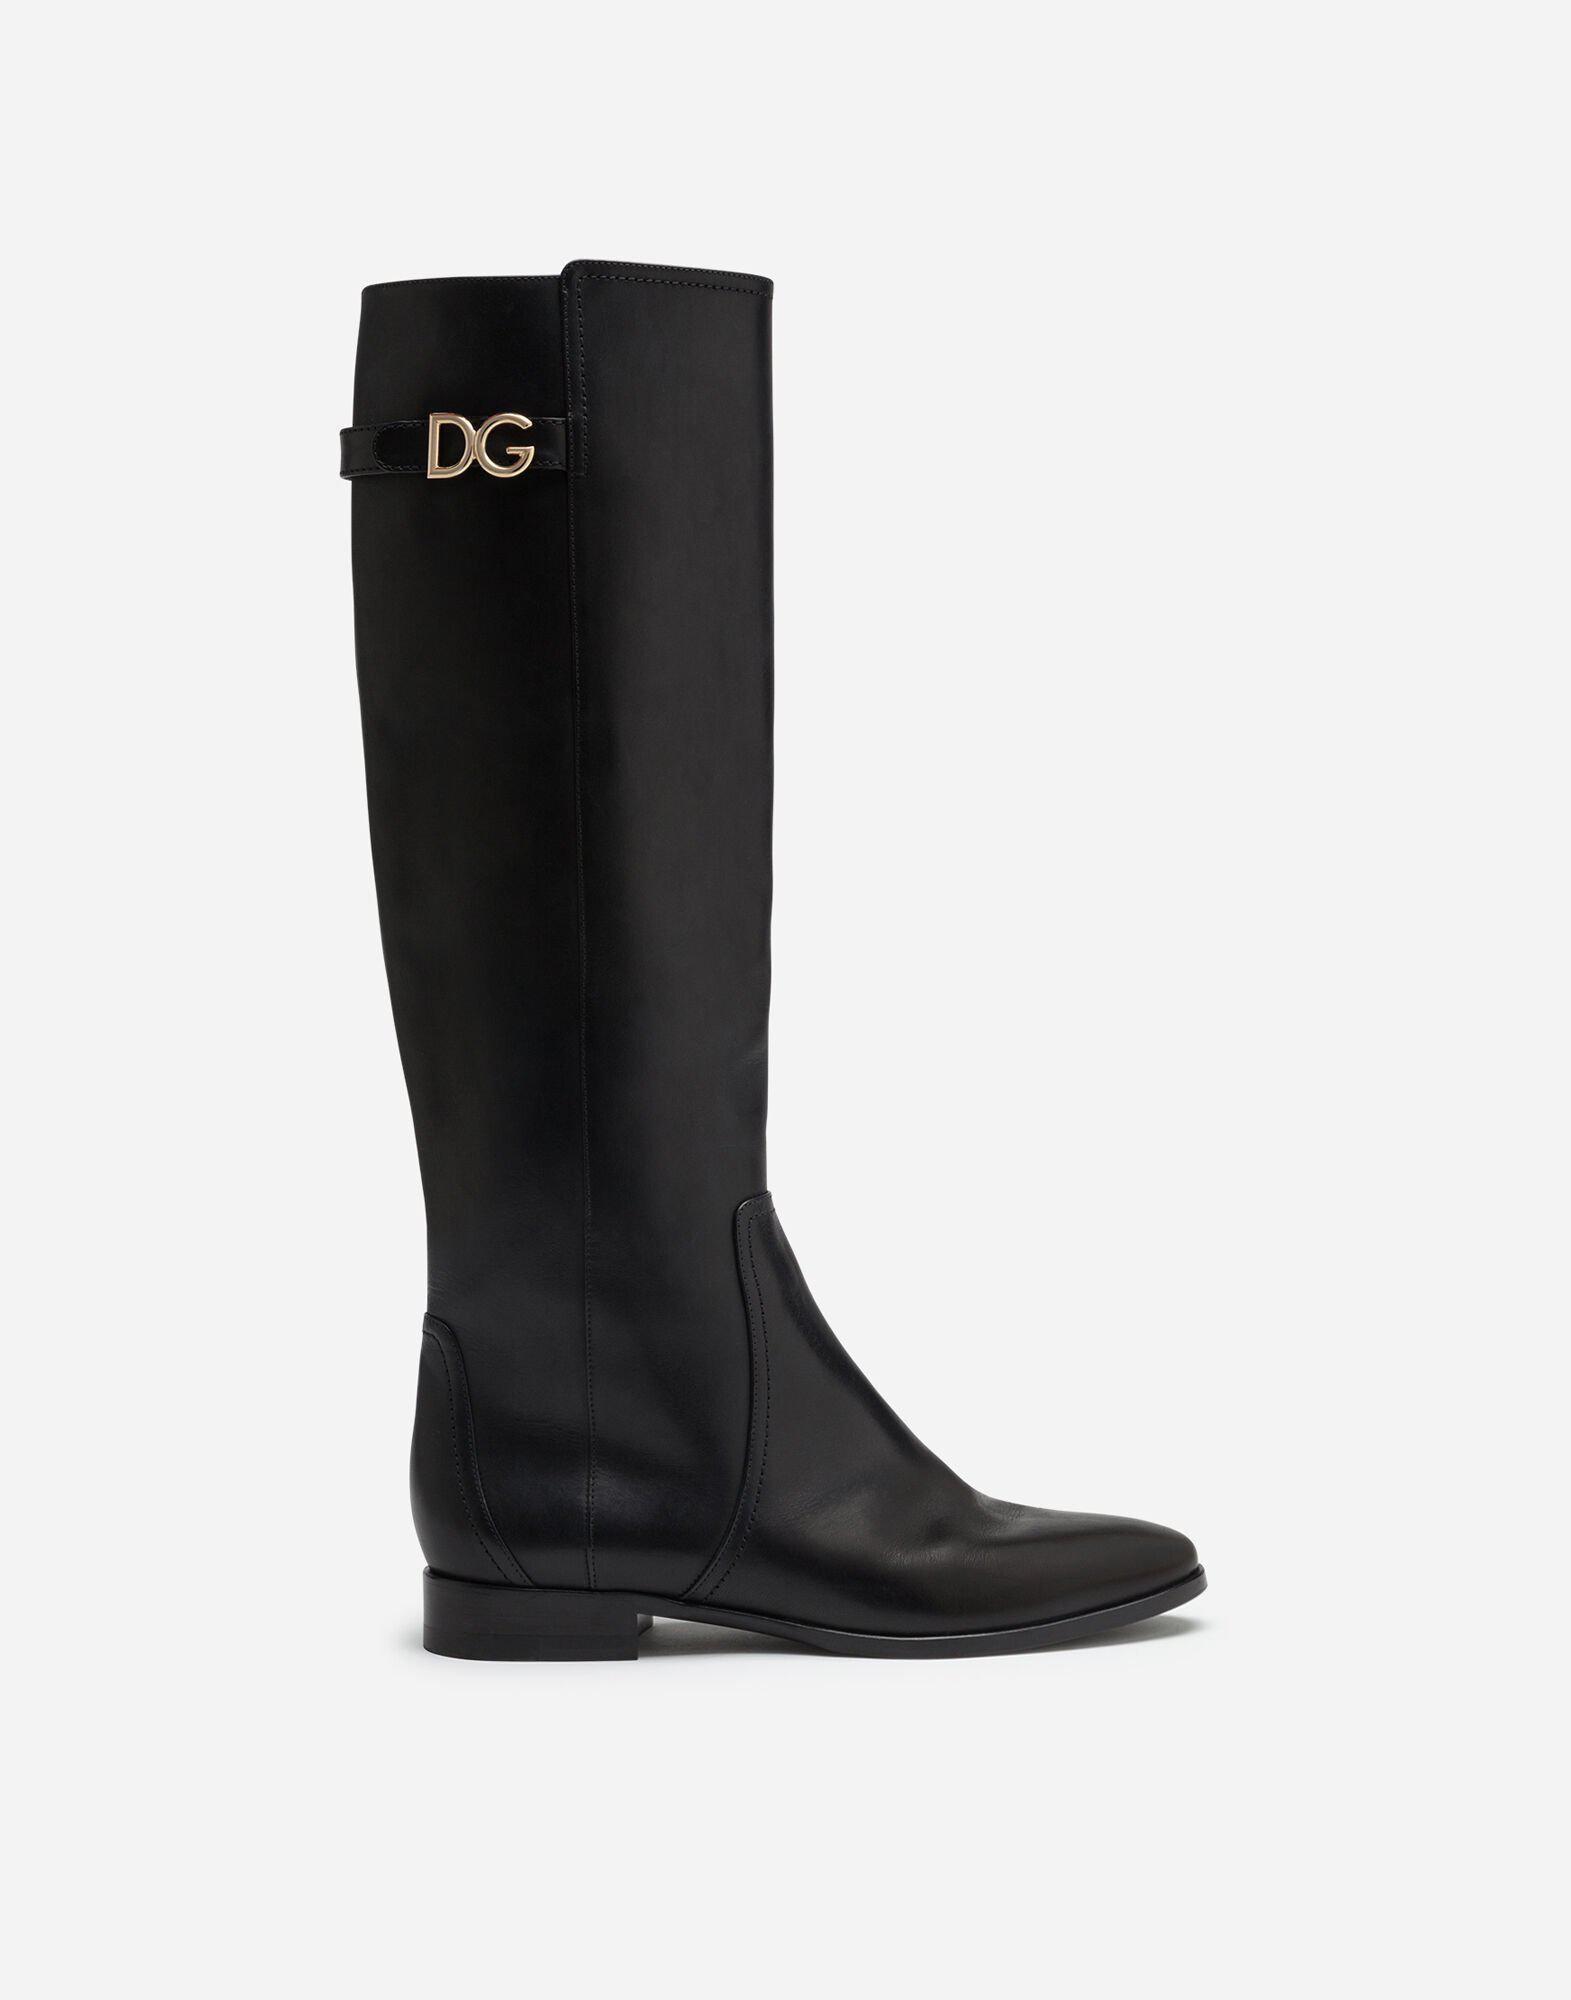 Boots in cowhide with DG logo